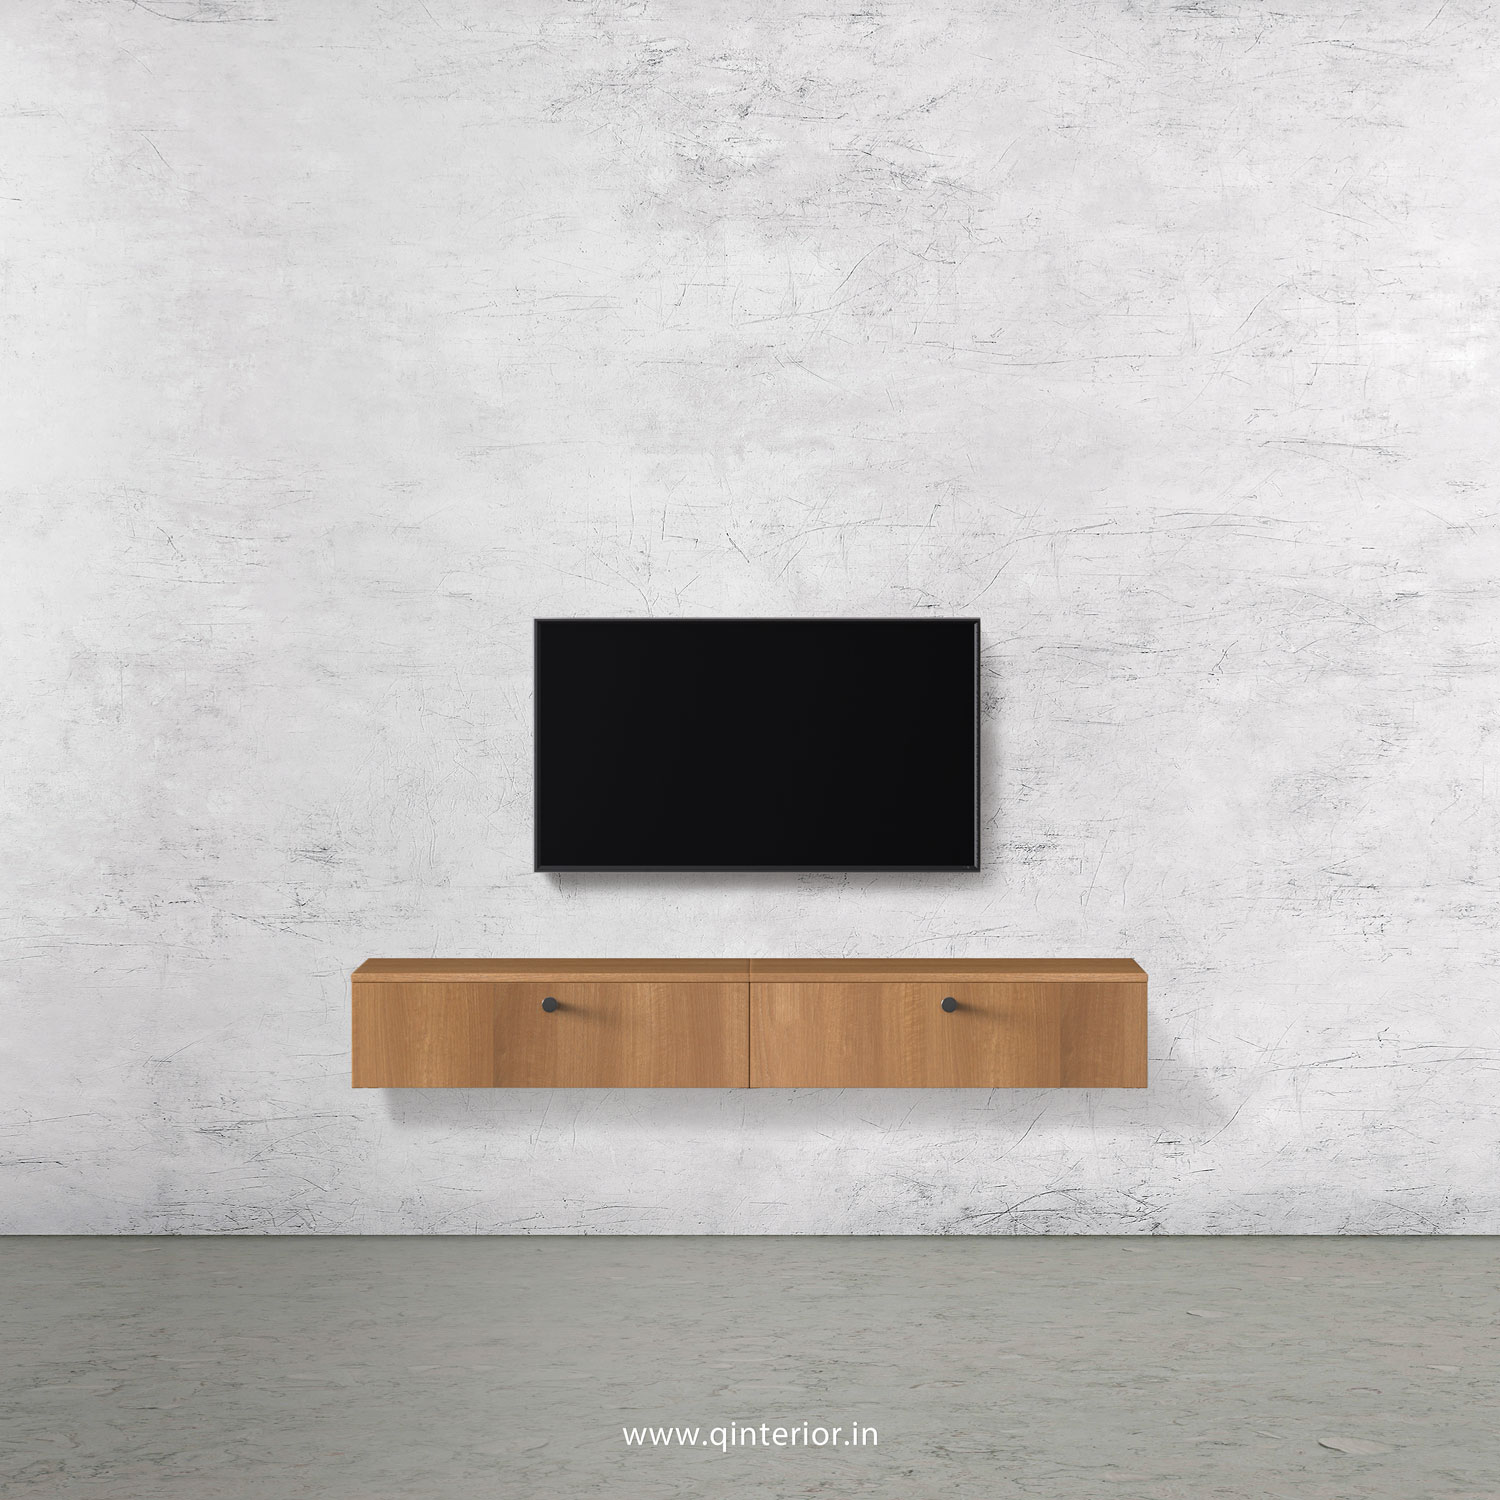 Stable TV Wall Unit in Oak Finish – TVW001 C2